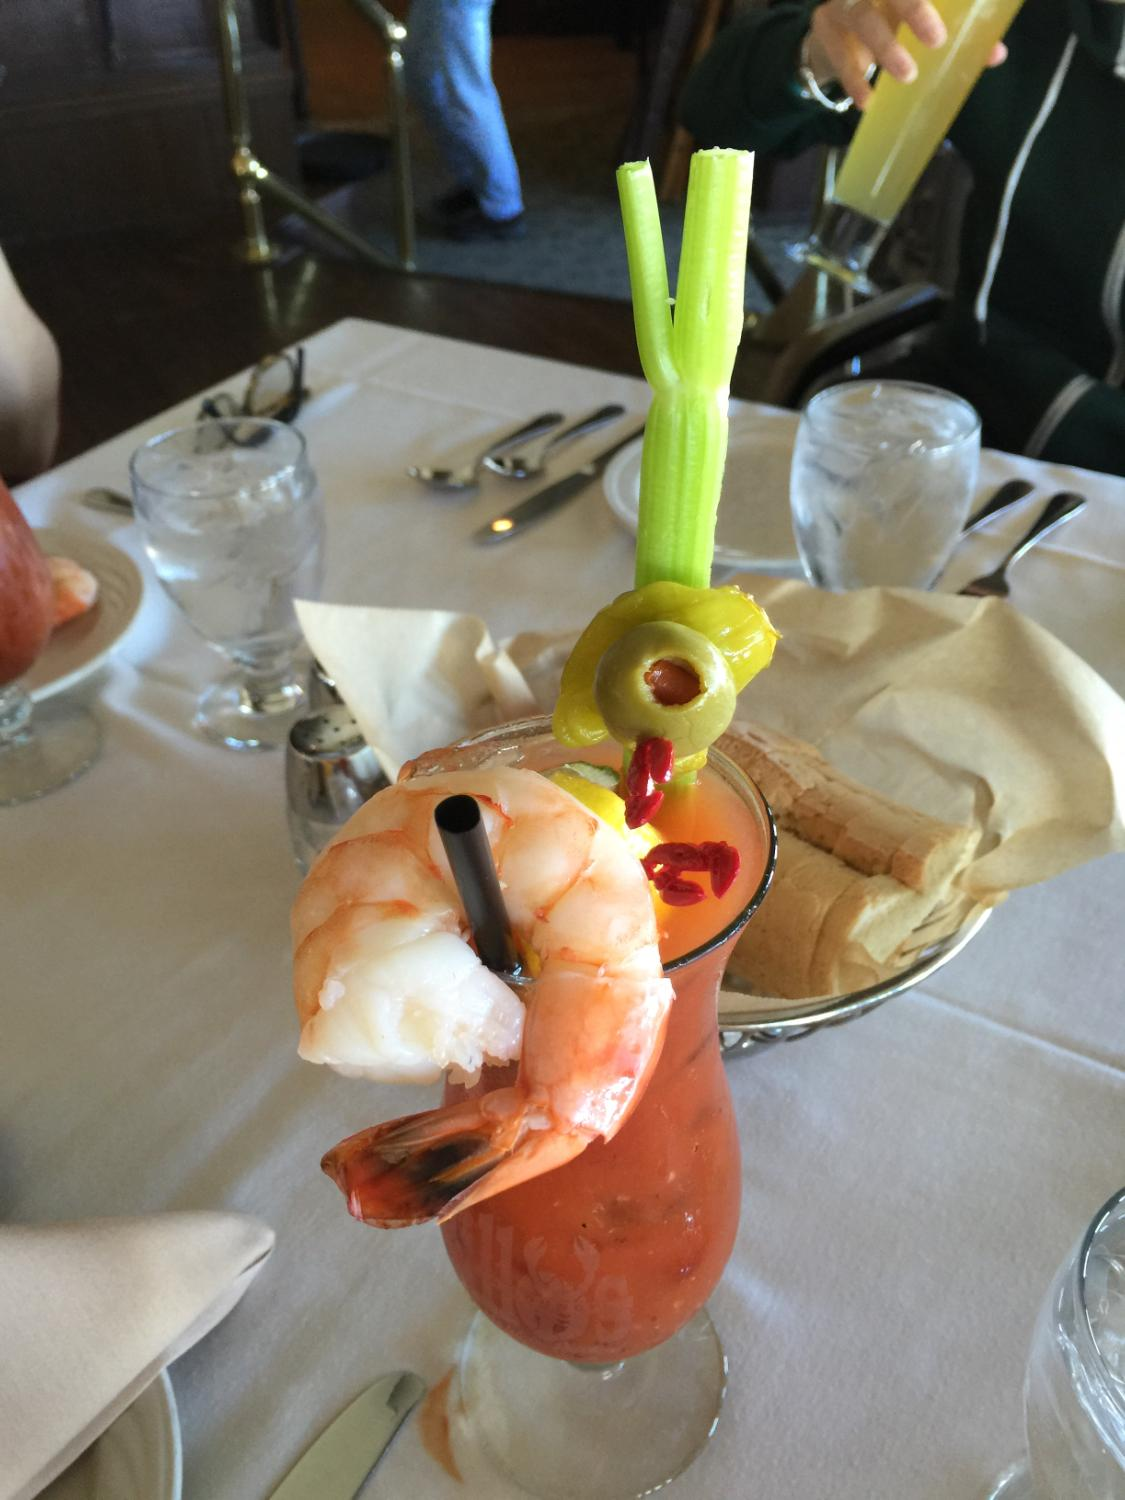 Well garnished Bloody Mary